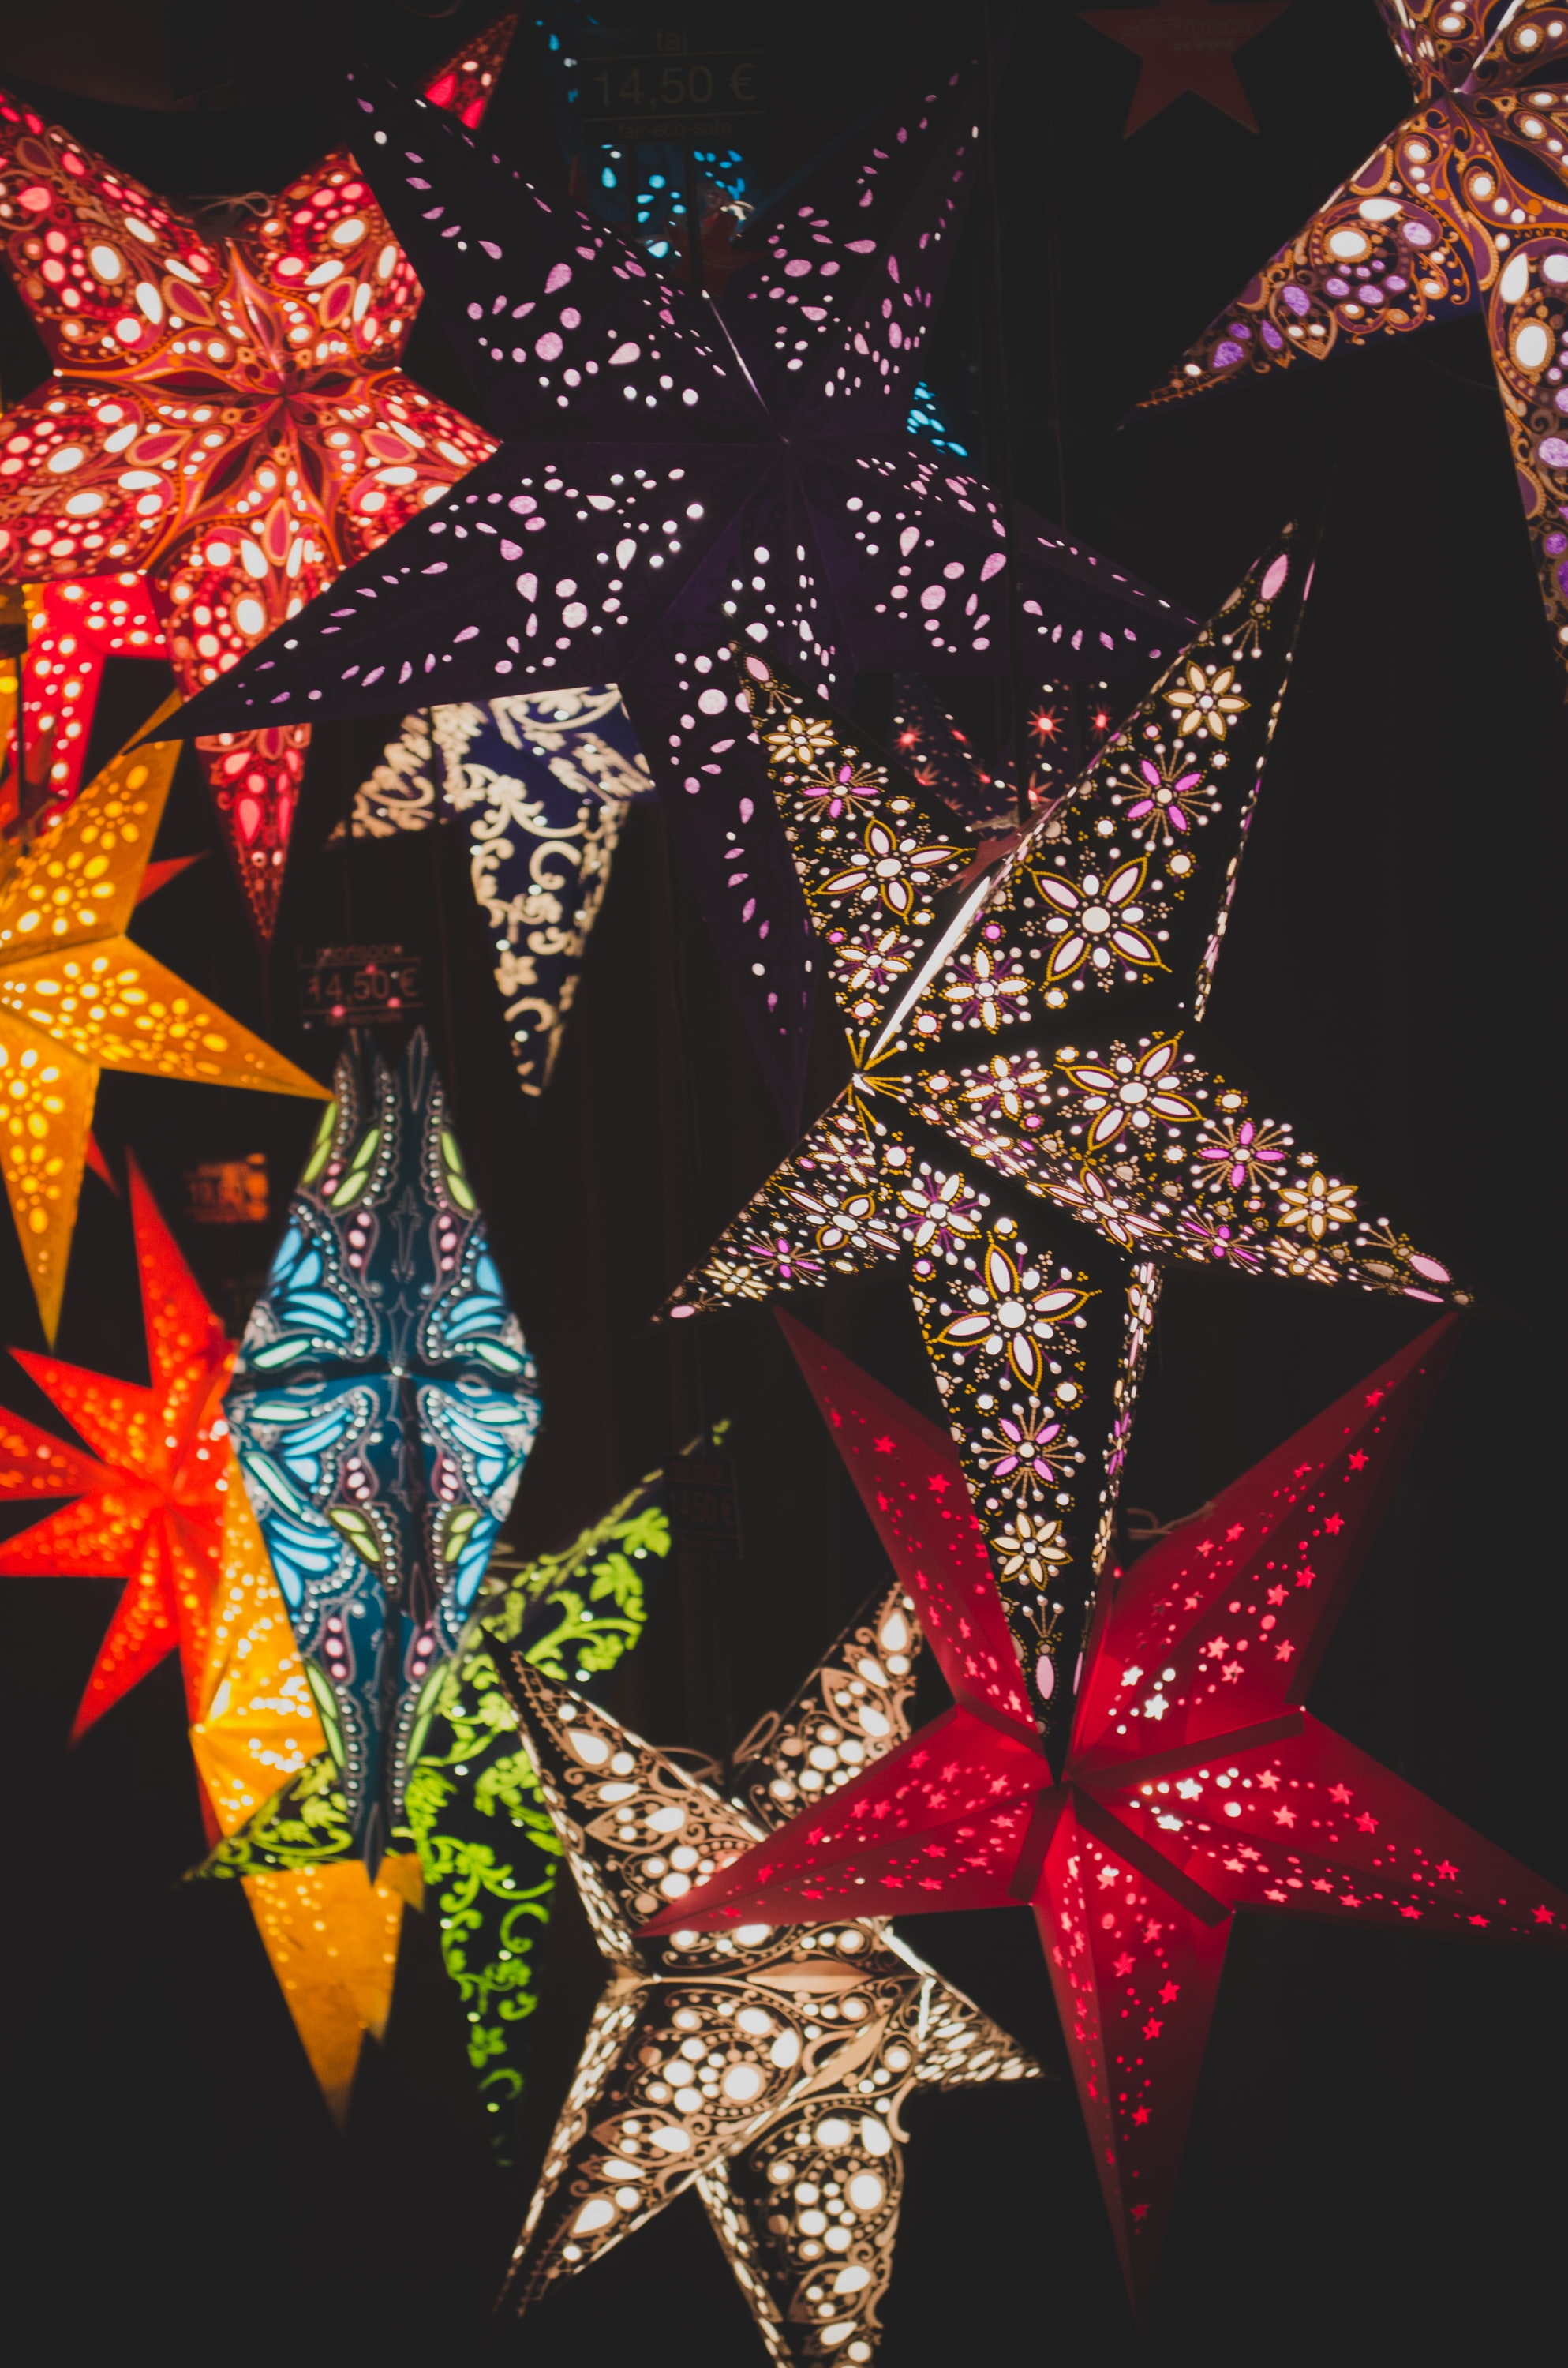 Colorful star shaped lights.